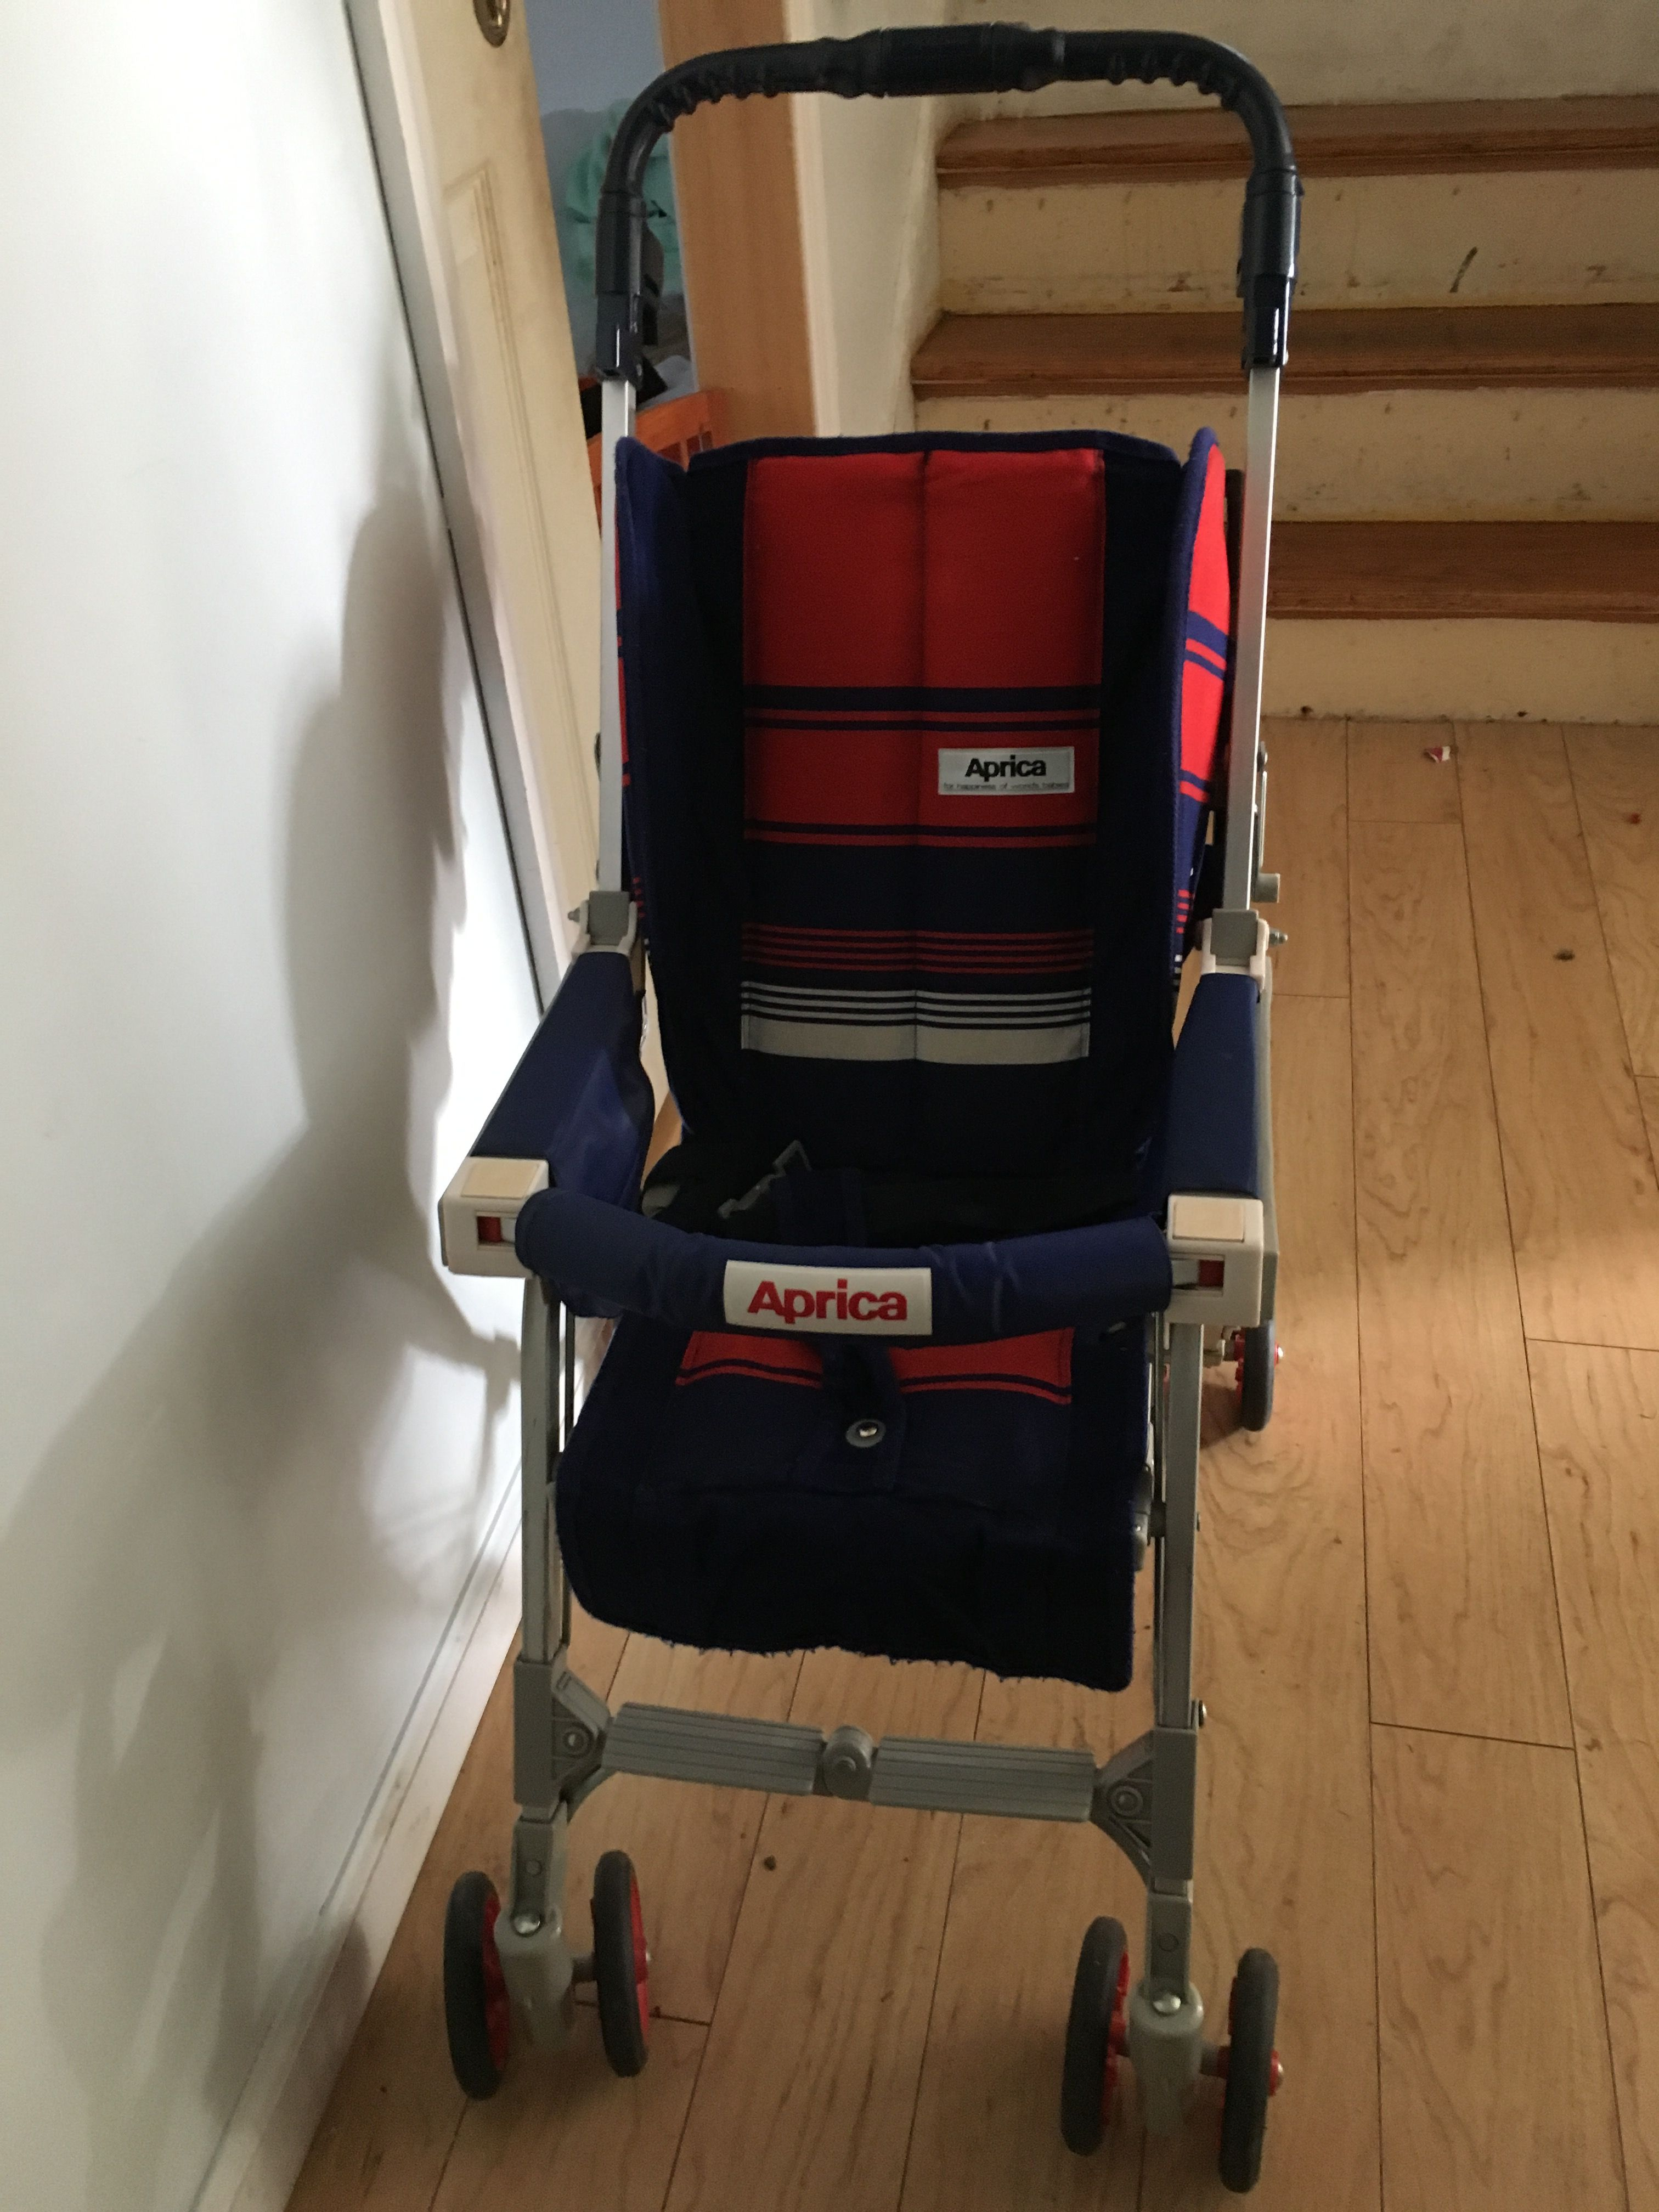 aprica baby stroller carriage from 1985 Vintage baby